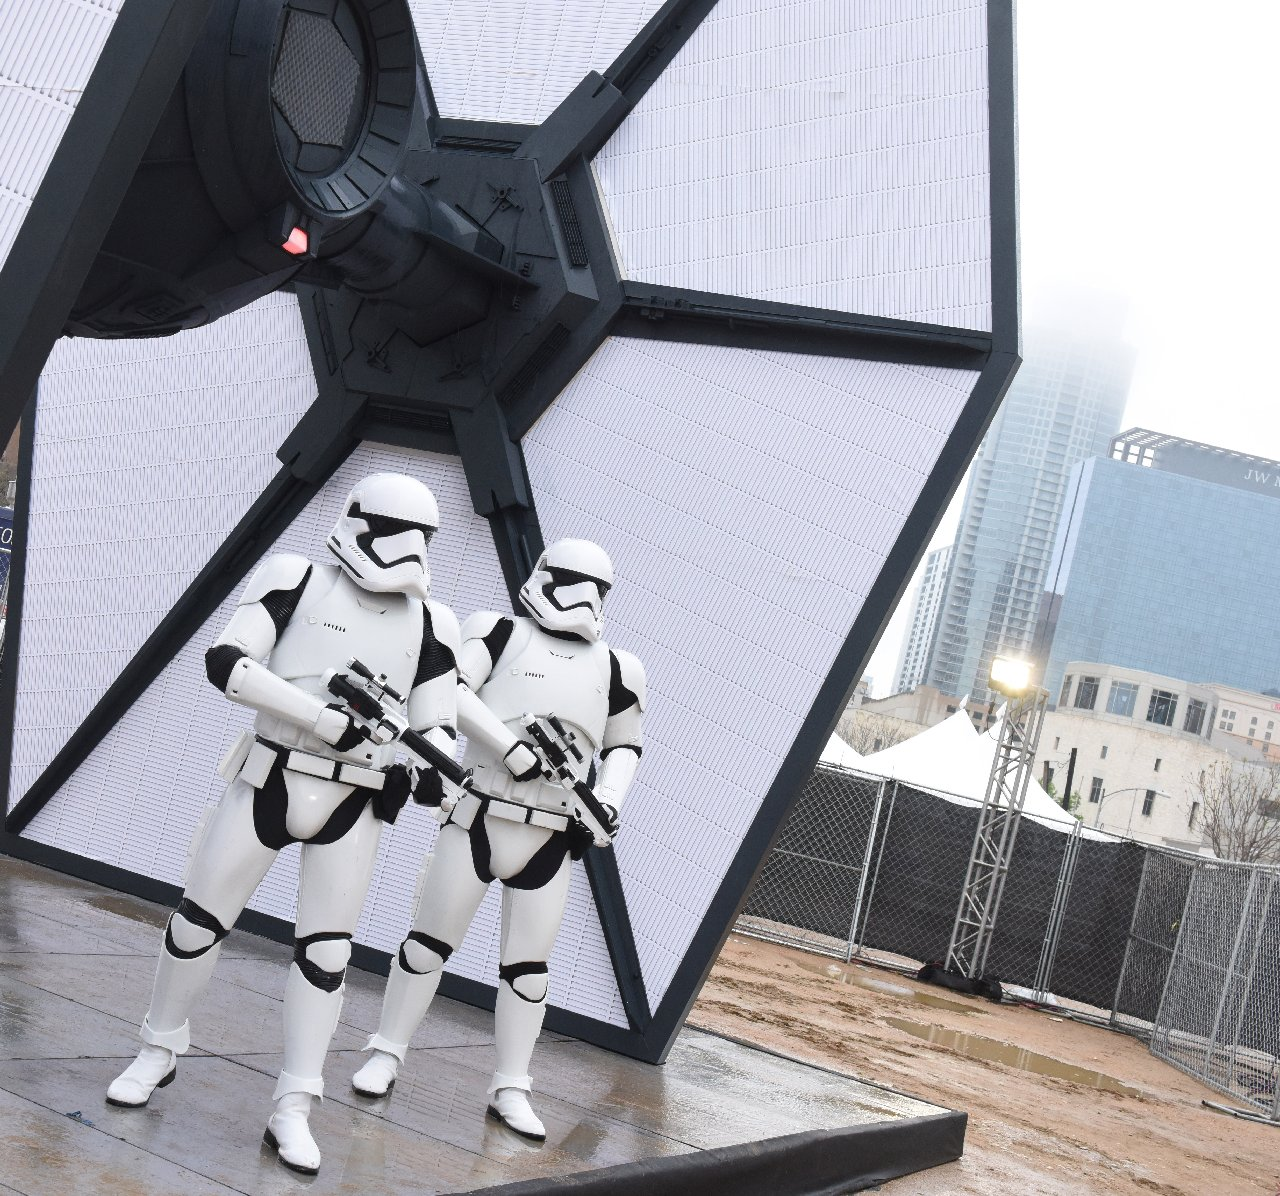 Star Wars: The Force Awakens at SXSW